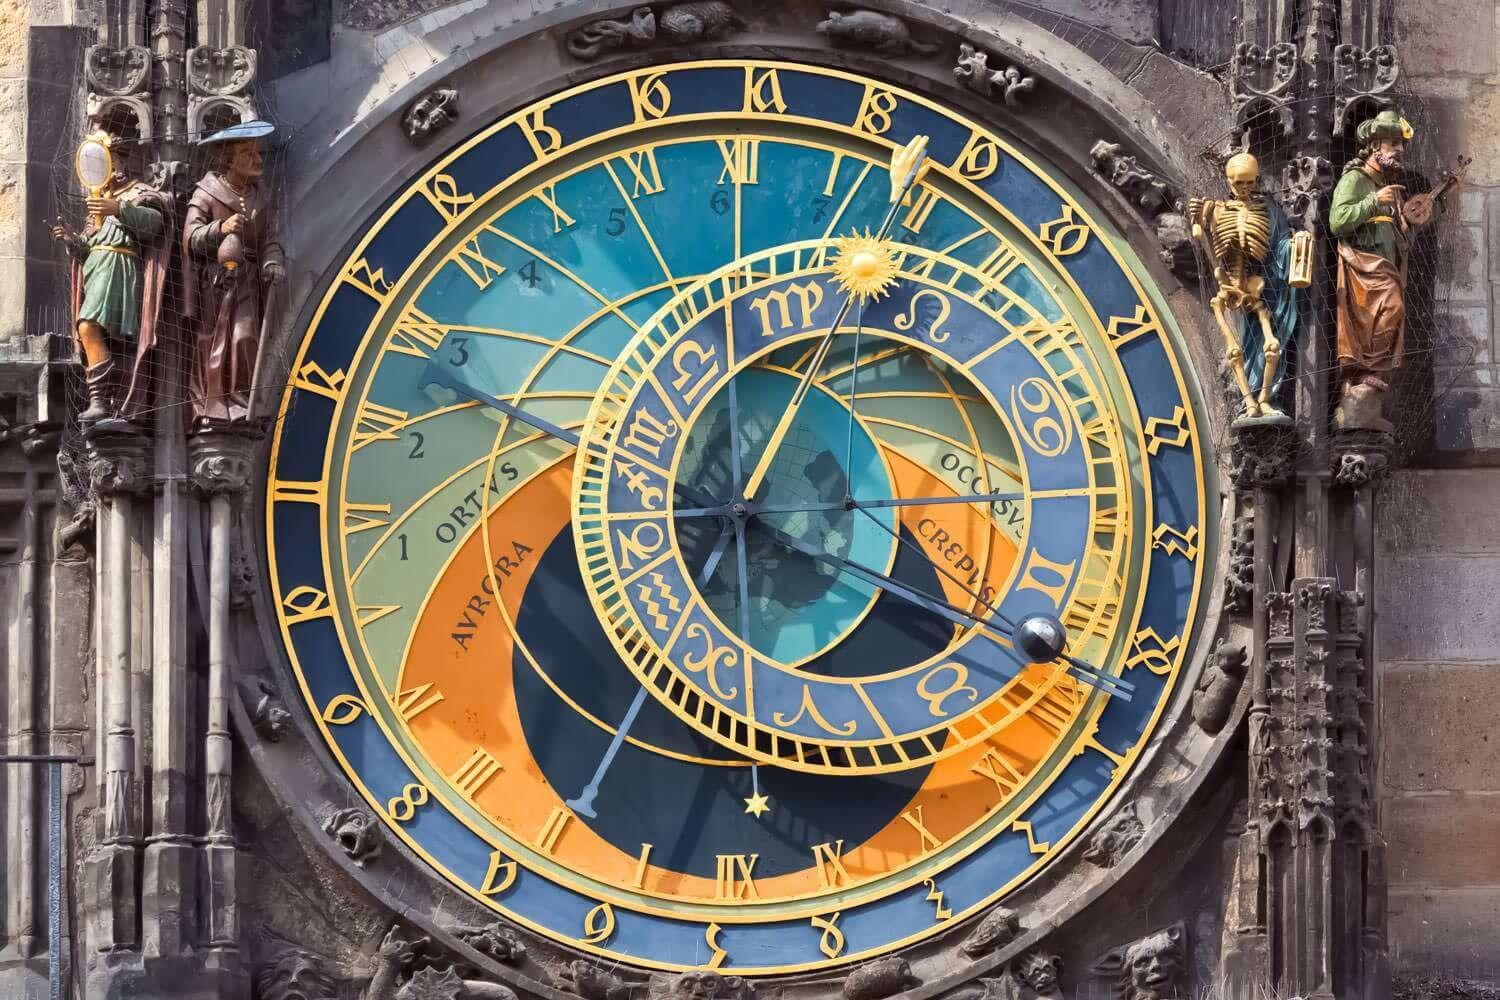 A picture of an astronomical clock